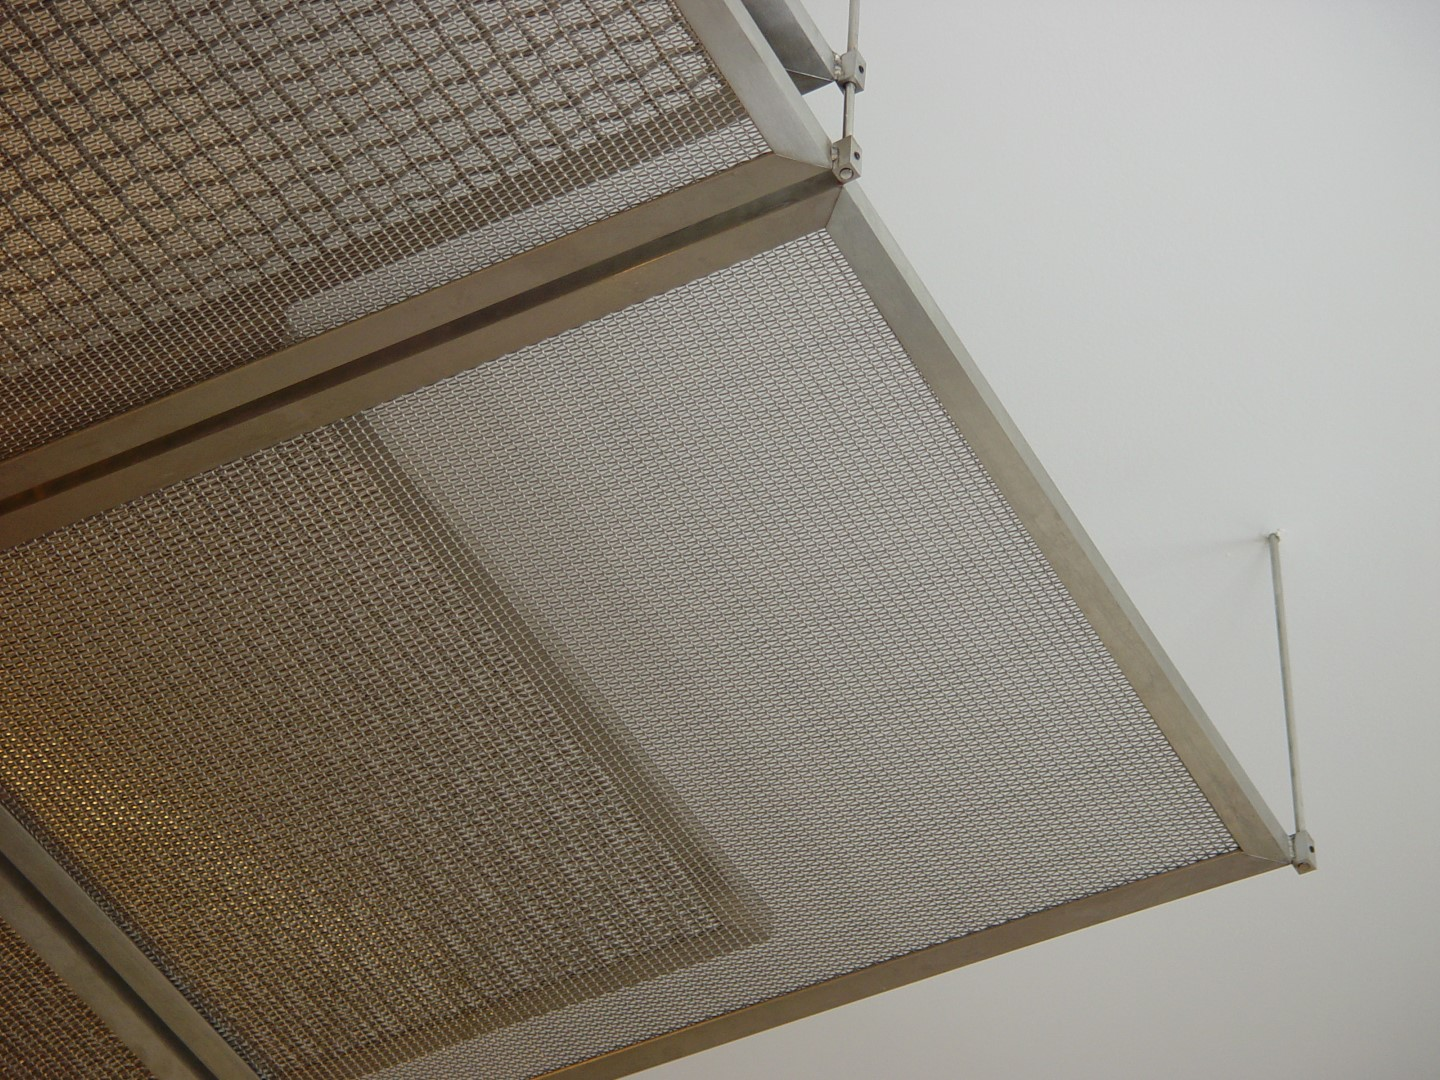 Layers of woven wire mesh are visible because of differences in opacity.